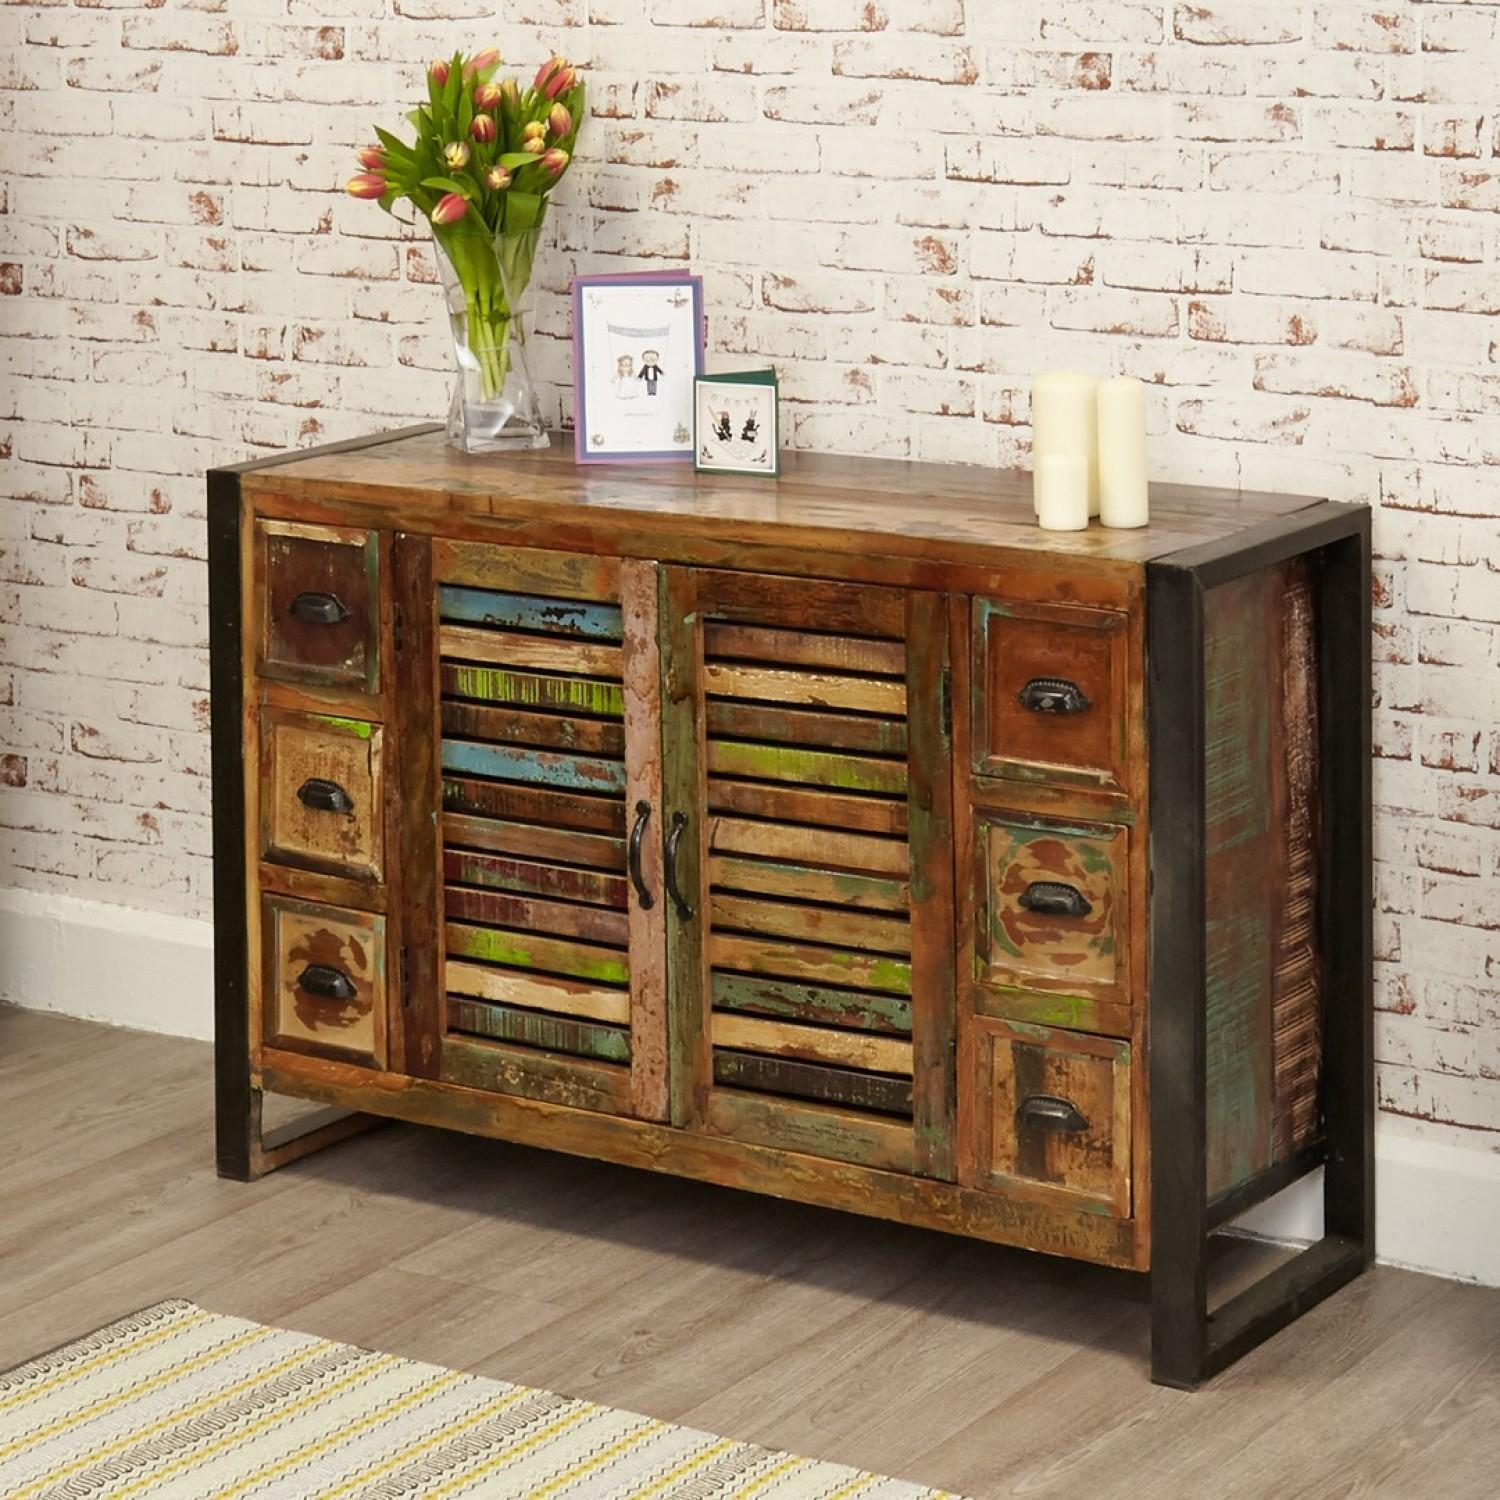 Bonsoni New Baudouin Drawer Sideboard Shabby Chic